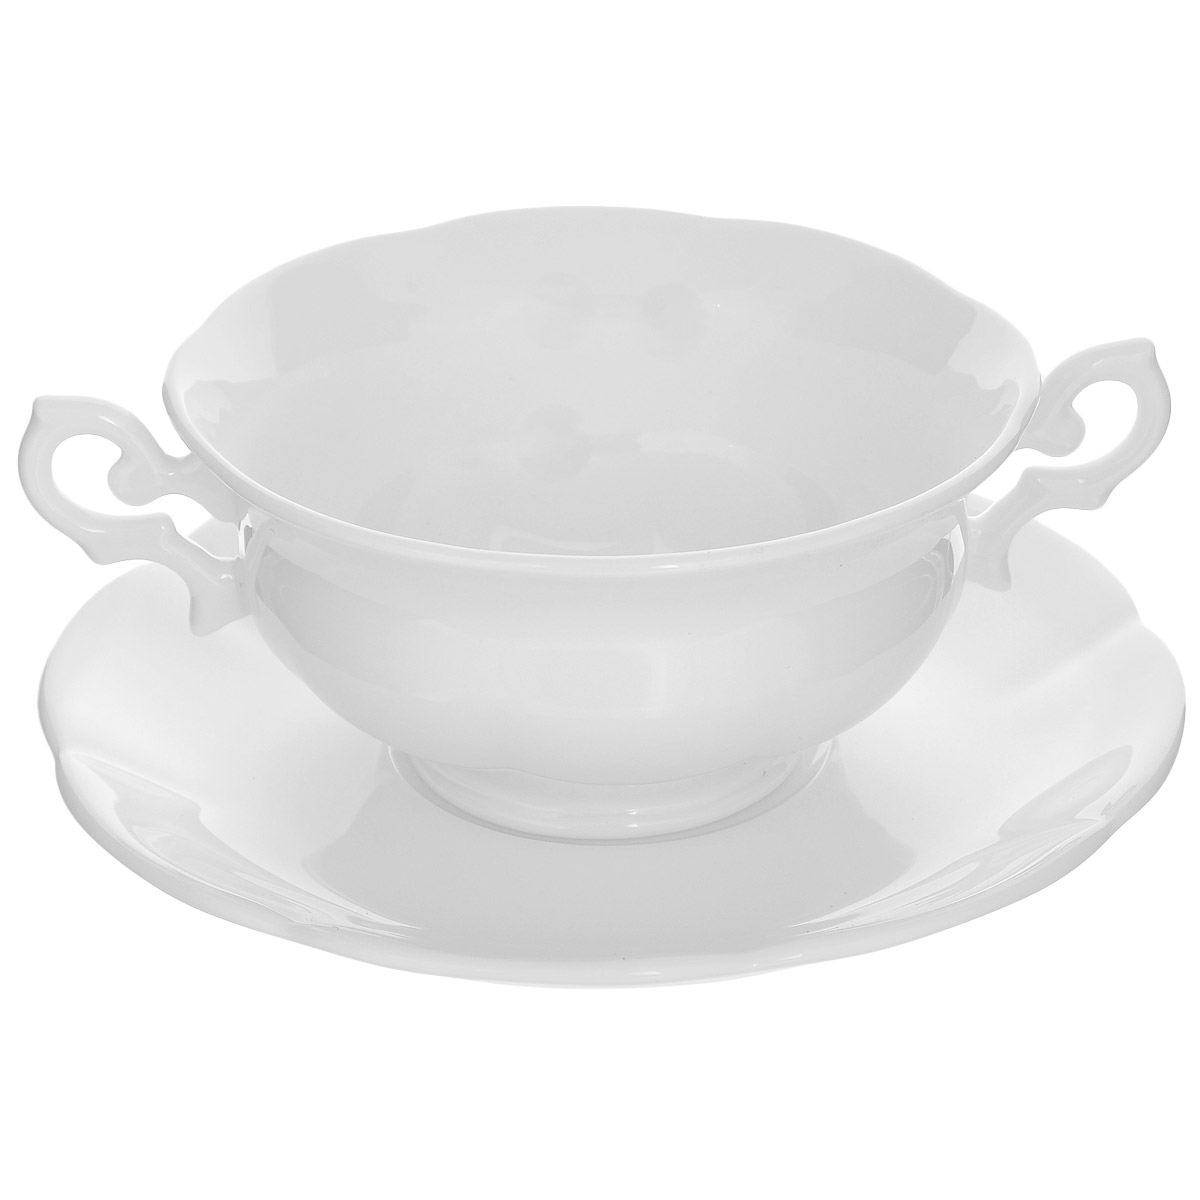 Бульонница на тарелке Royal Bone China White, 350 мл